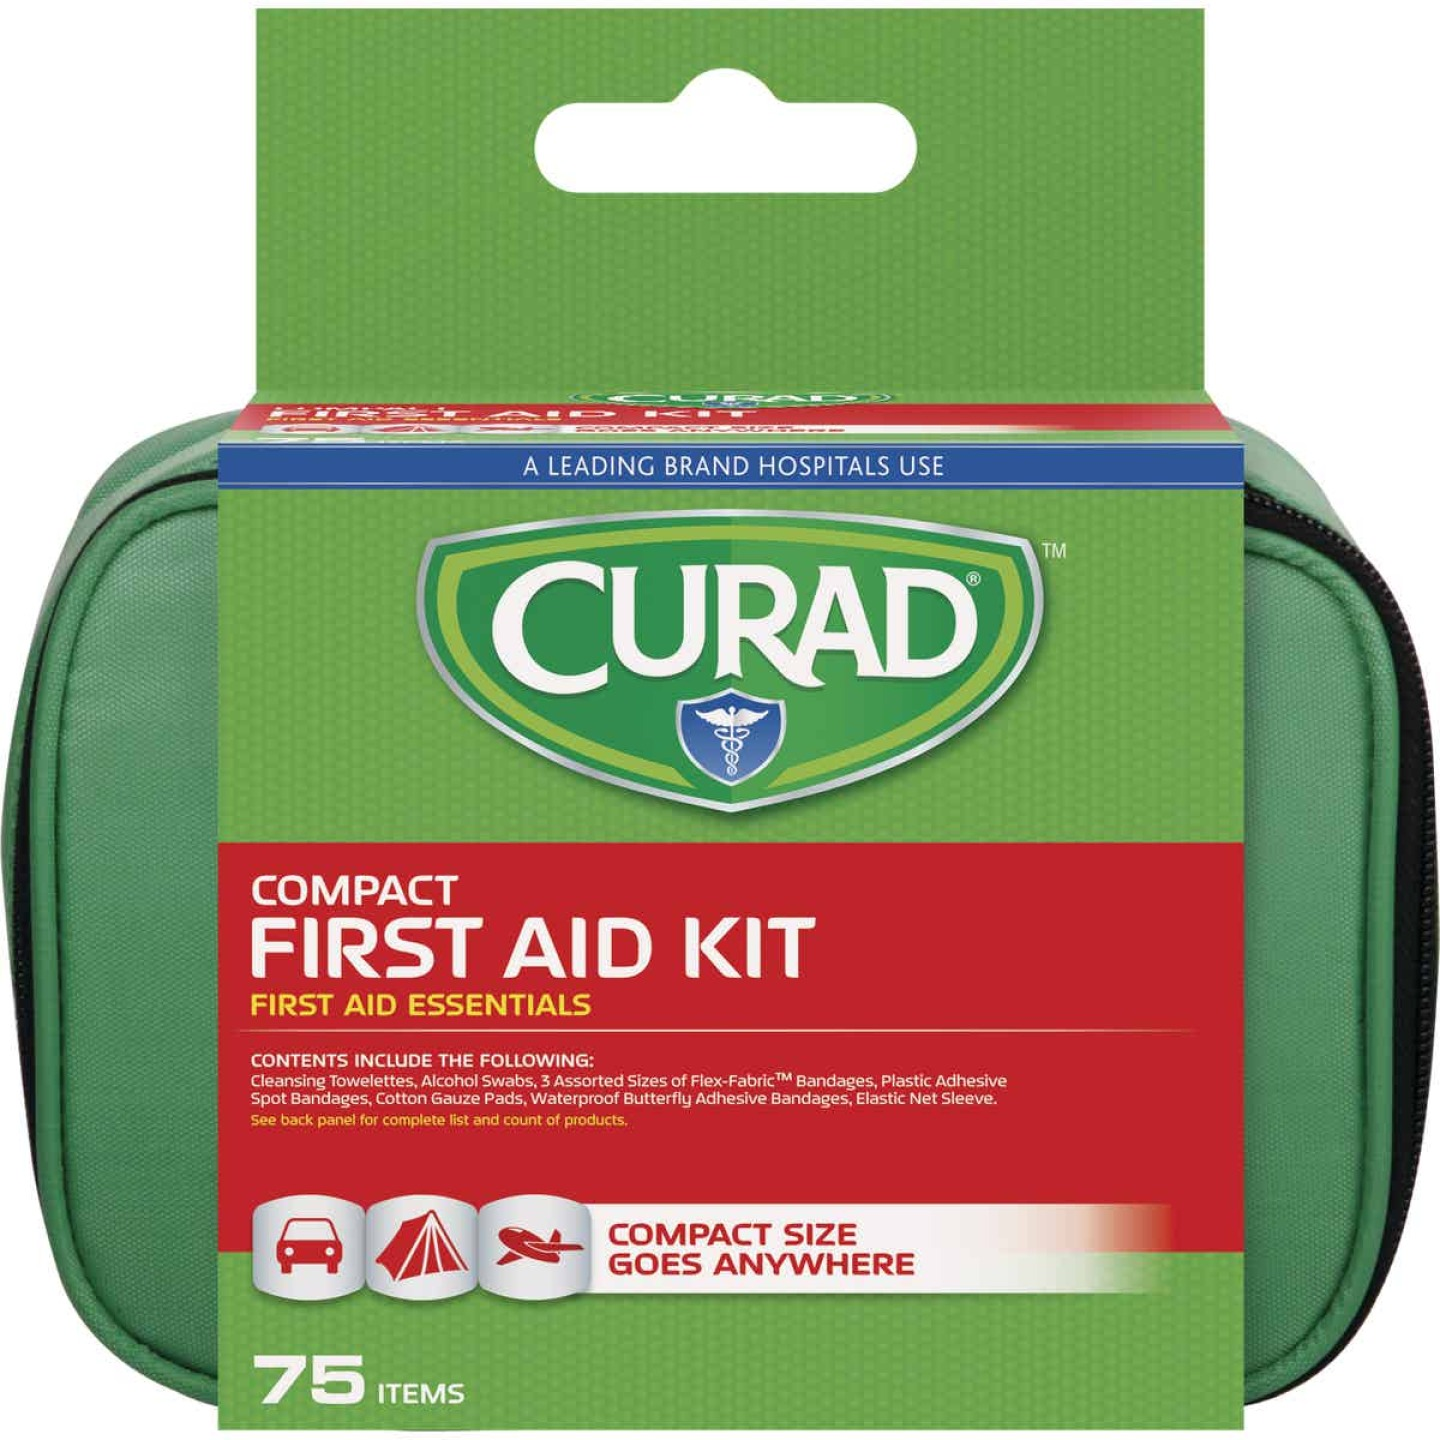 Curad Compact First Aid Kit (75-Piece) Image 1